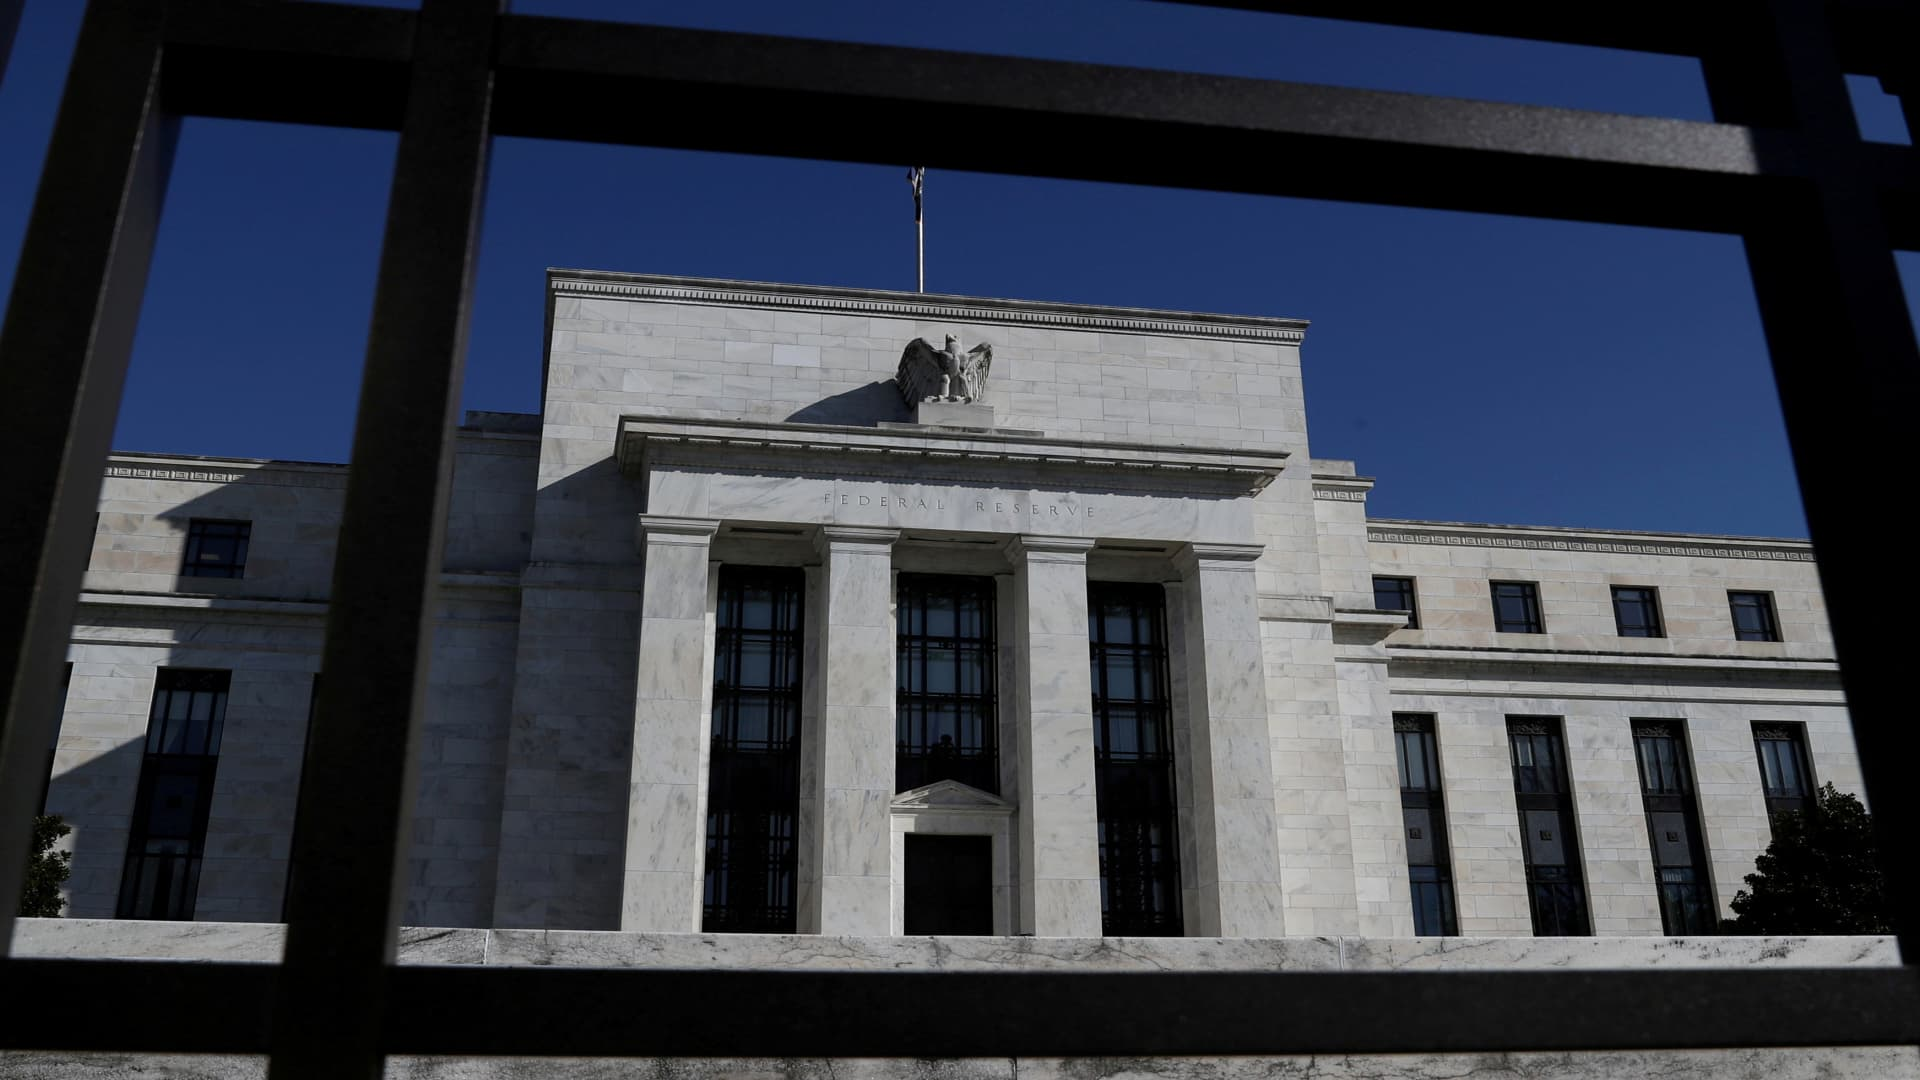 Federal Reserve Board building is pictured in Washington, U.S., March 19, 2019.